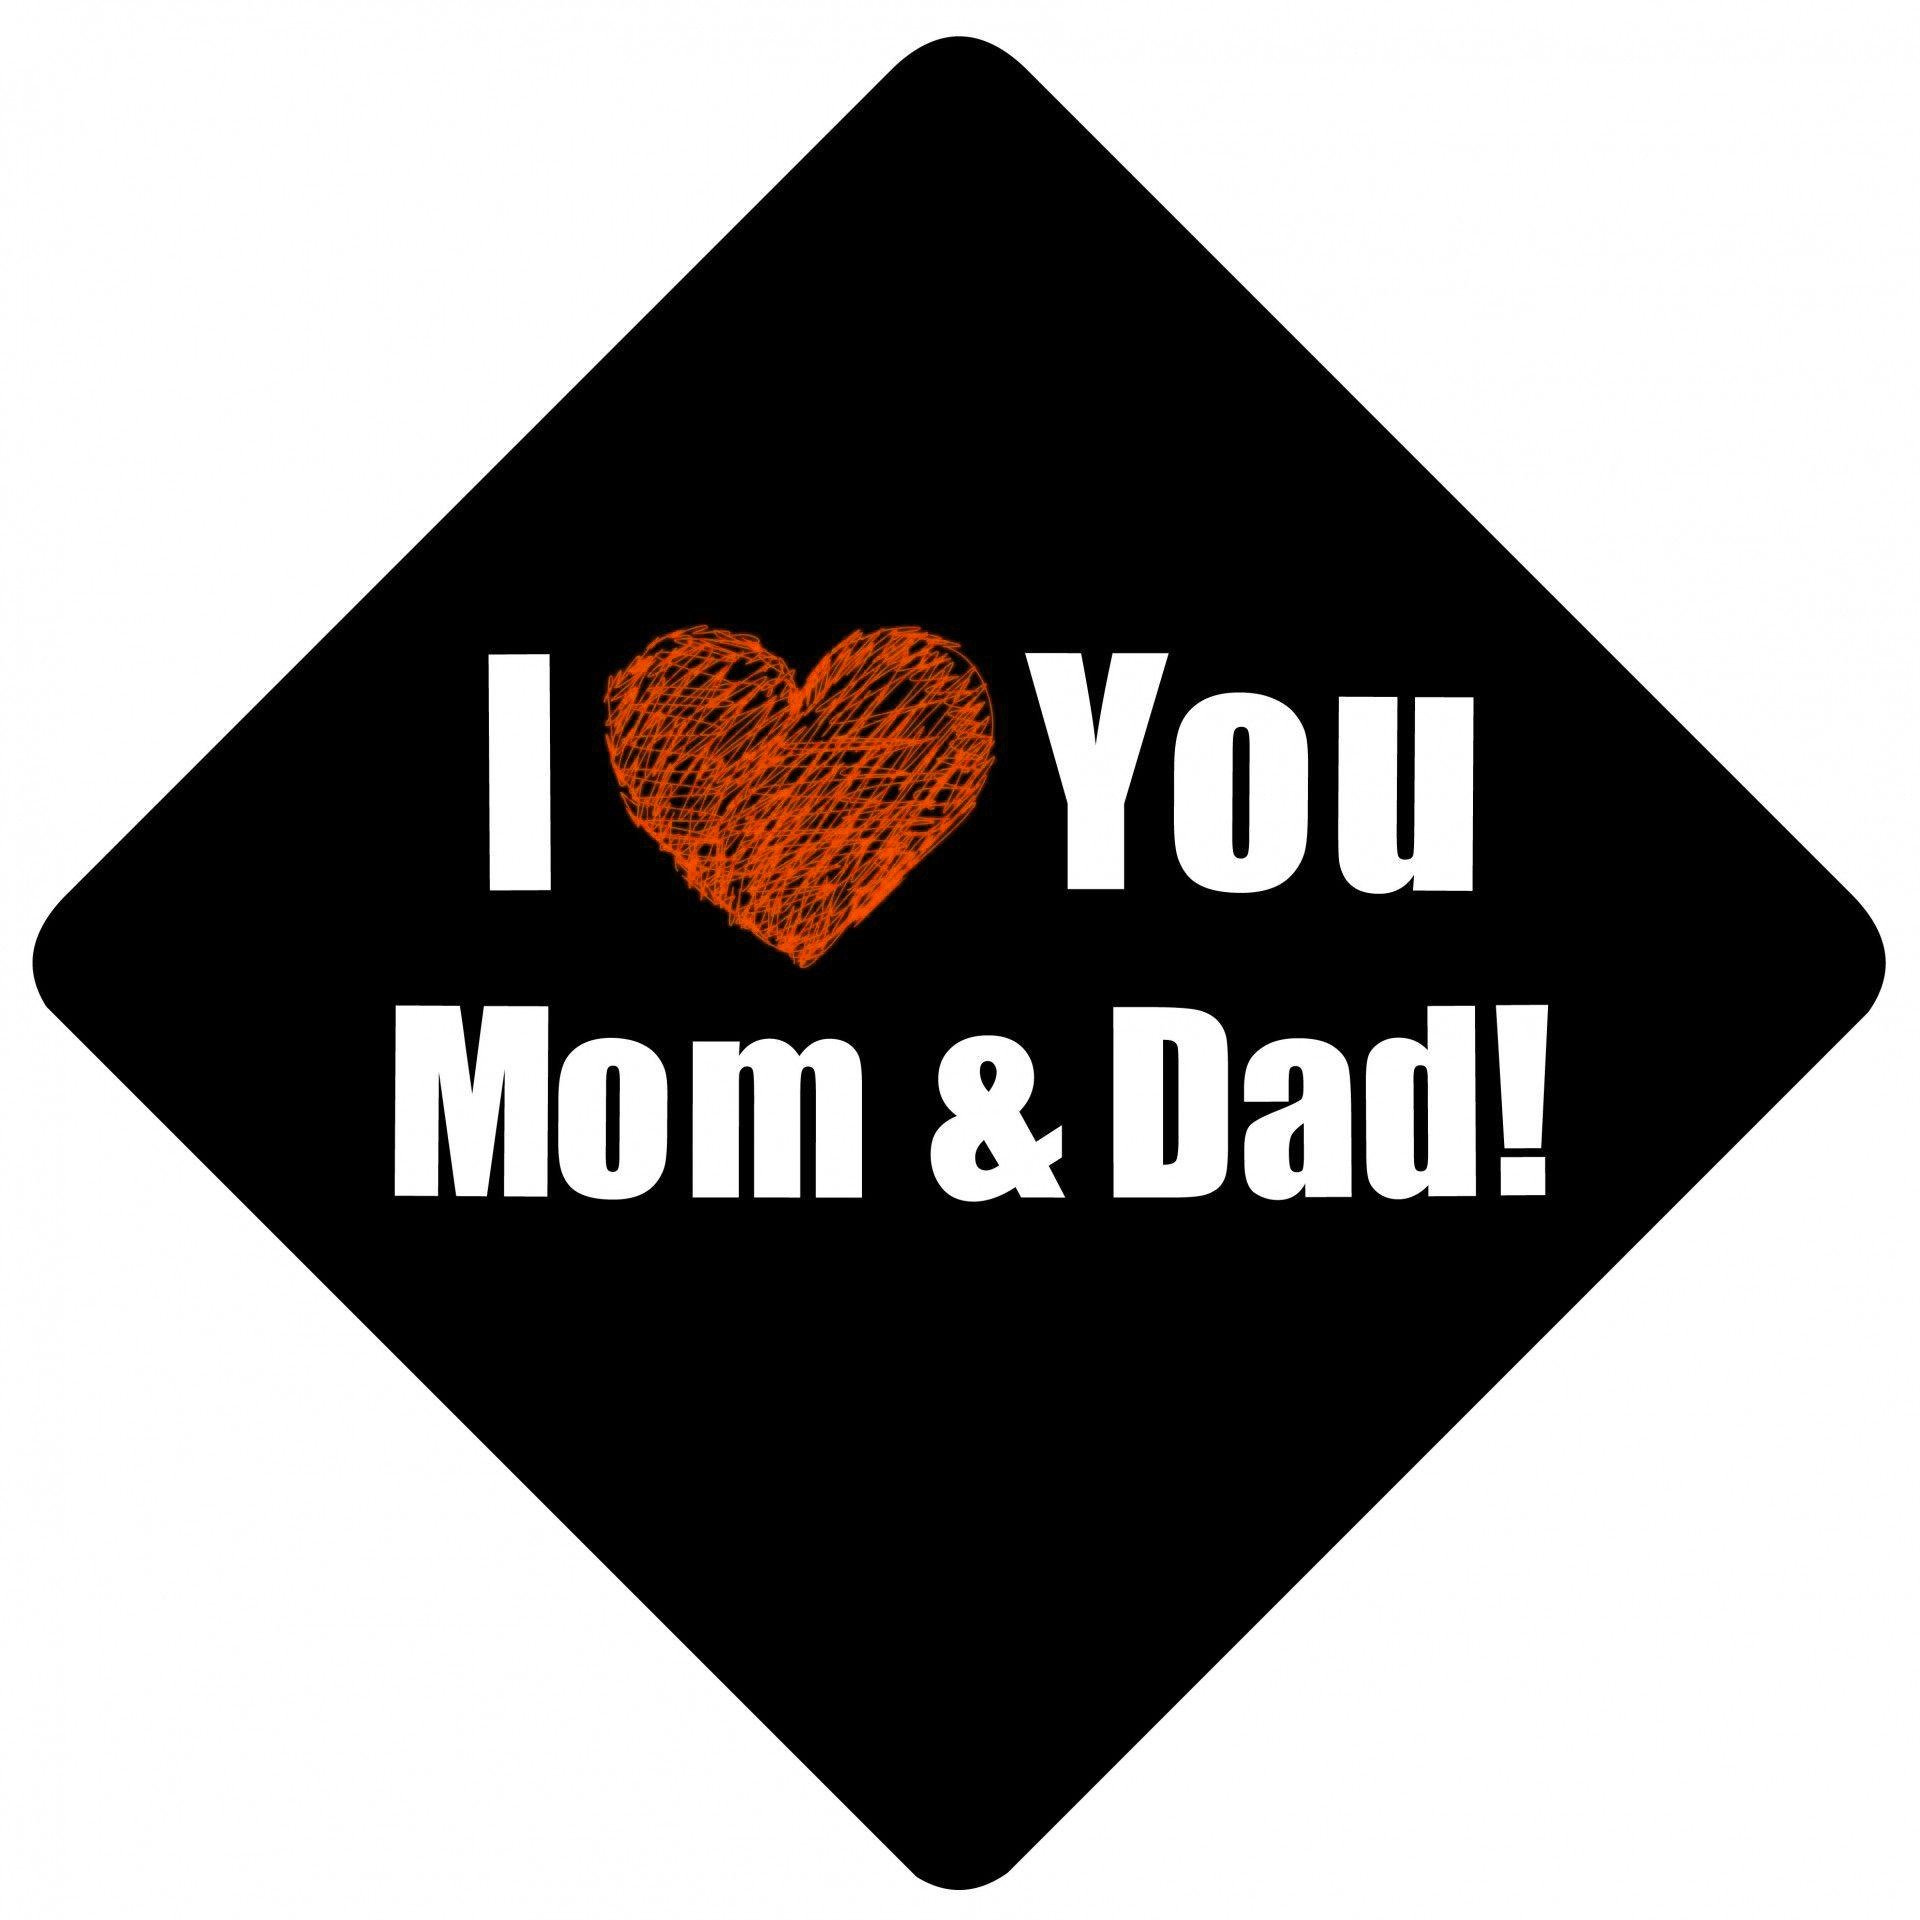 Mom Dad Whatsapp DP Images for Facebook